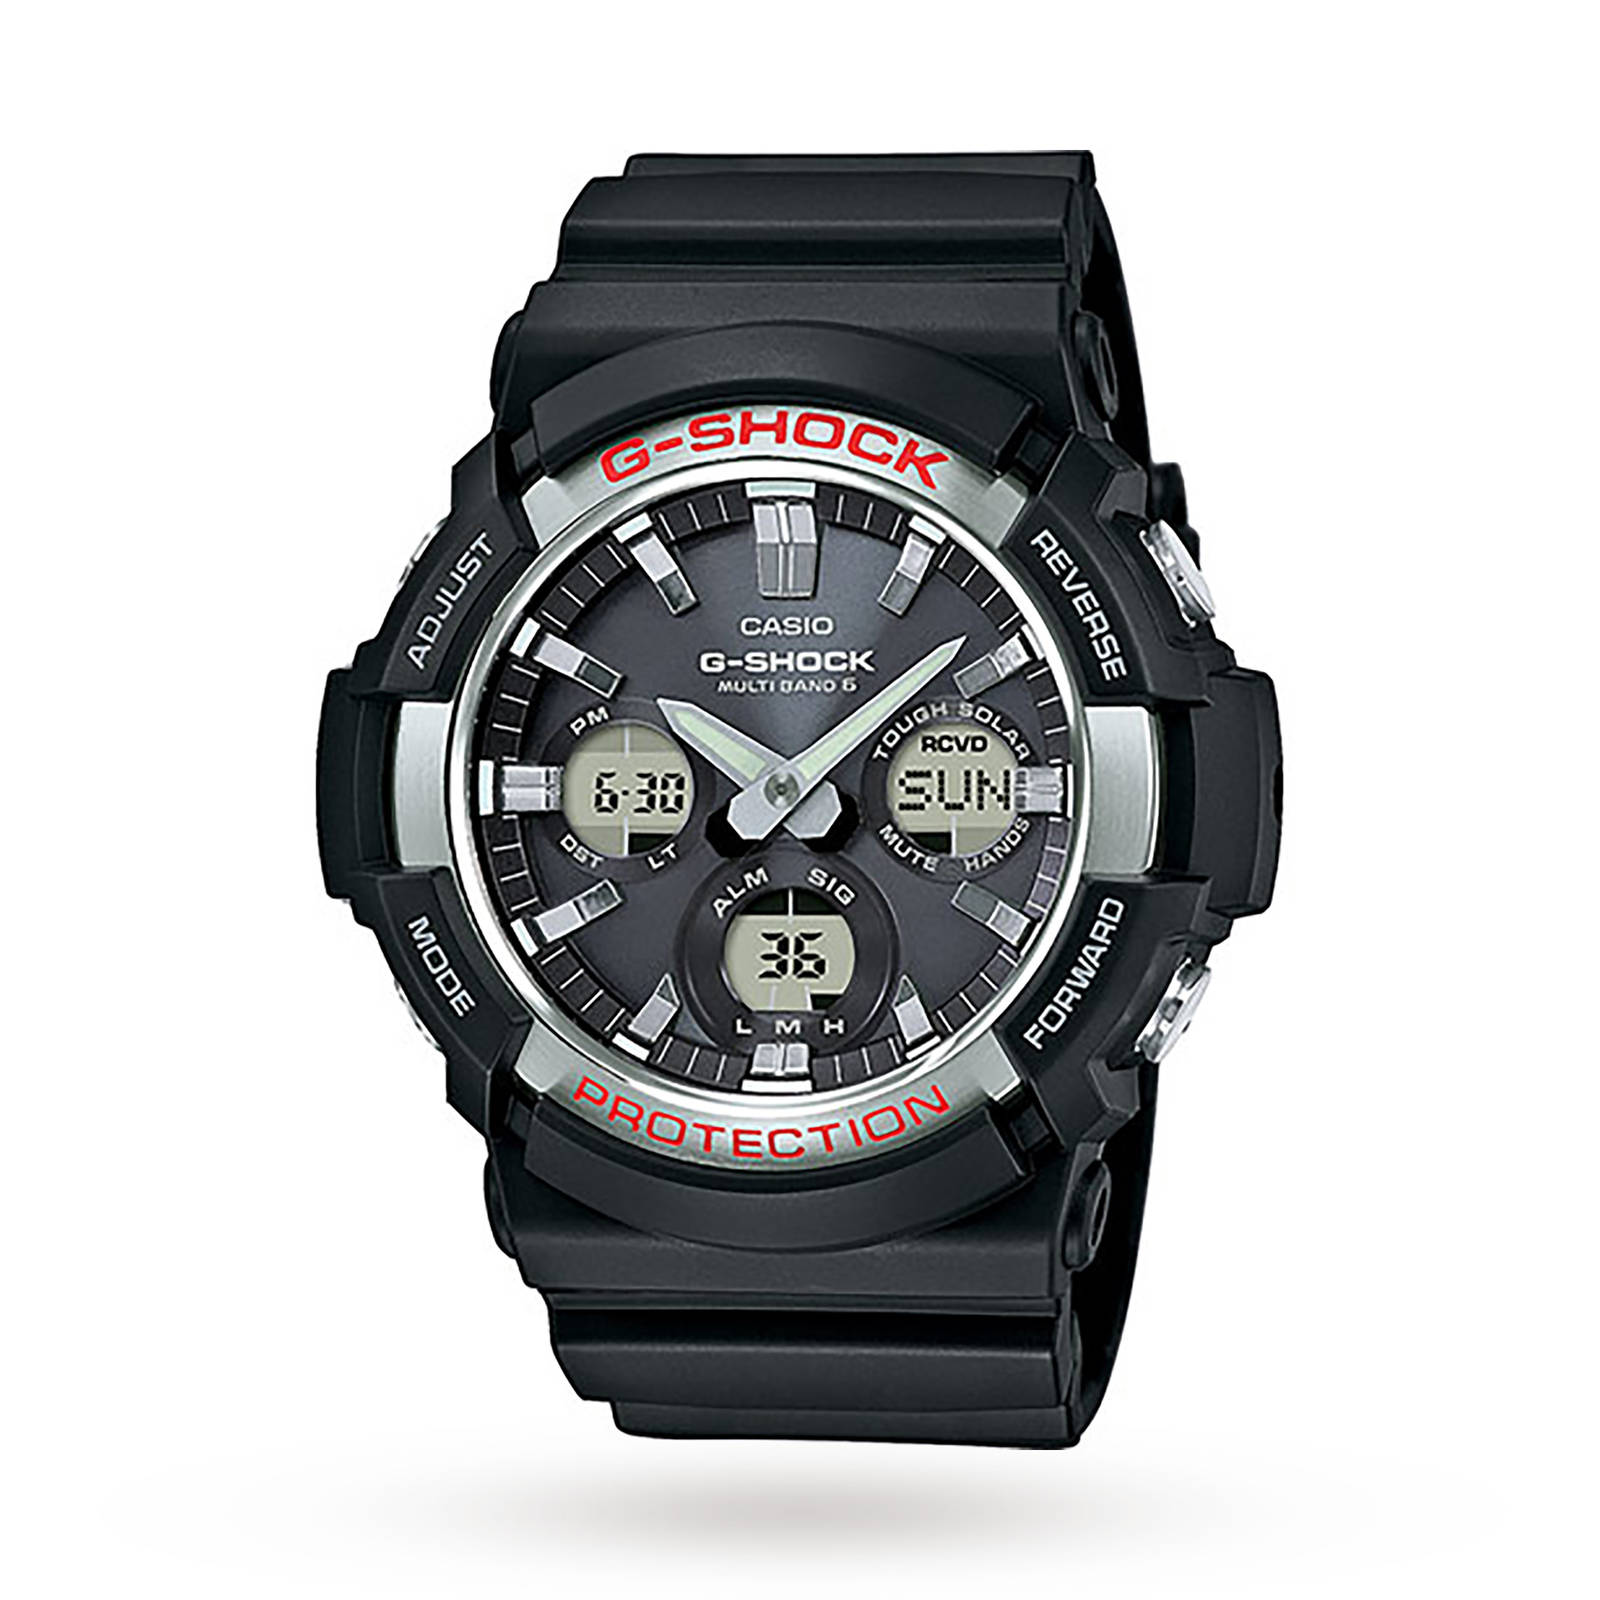 Casio G-Shock Waveceptor Alarm Chronograph Watch